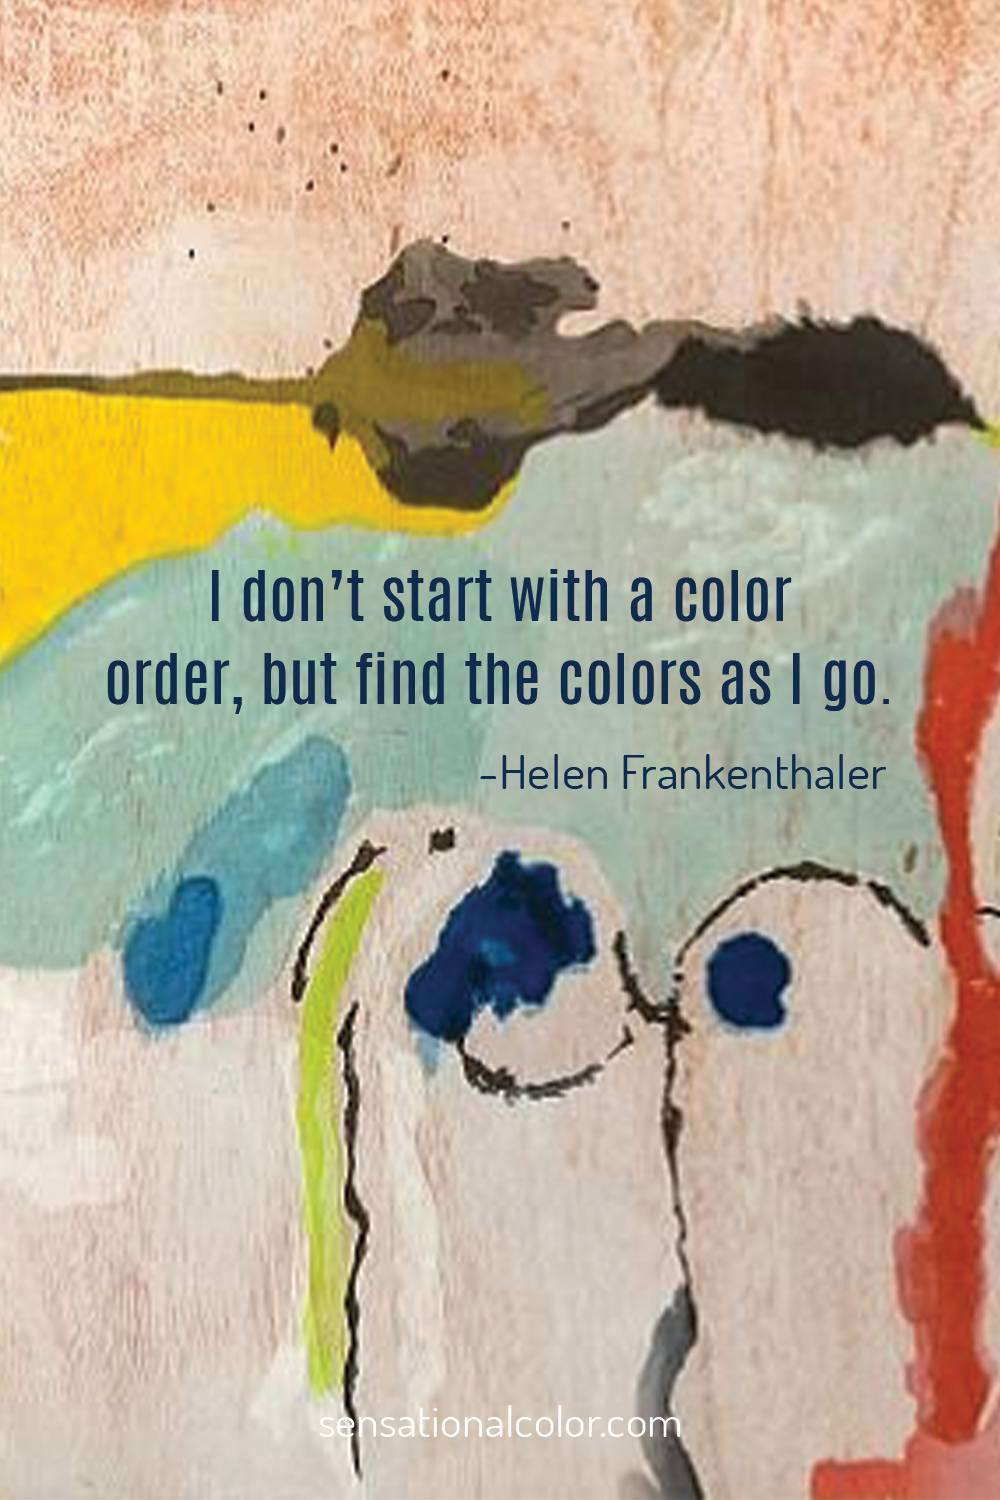 """I don't start with a color order, but find the colors as I go."" - Helen Frankenthaler"